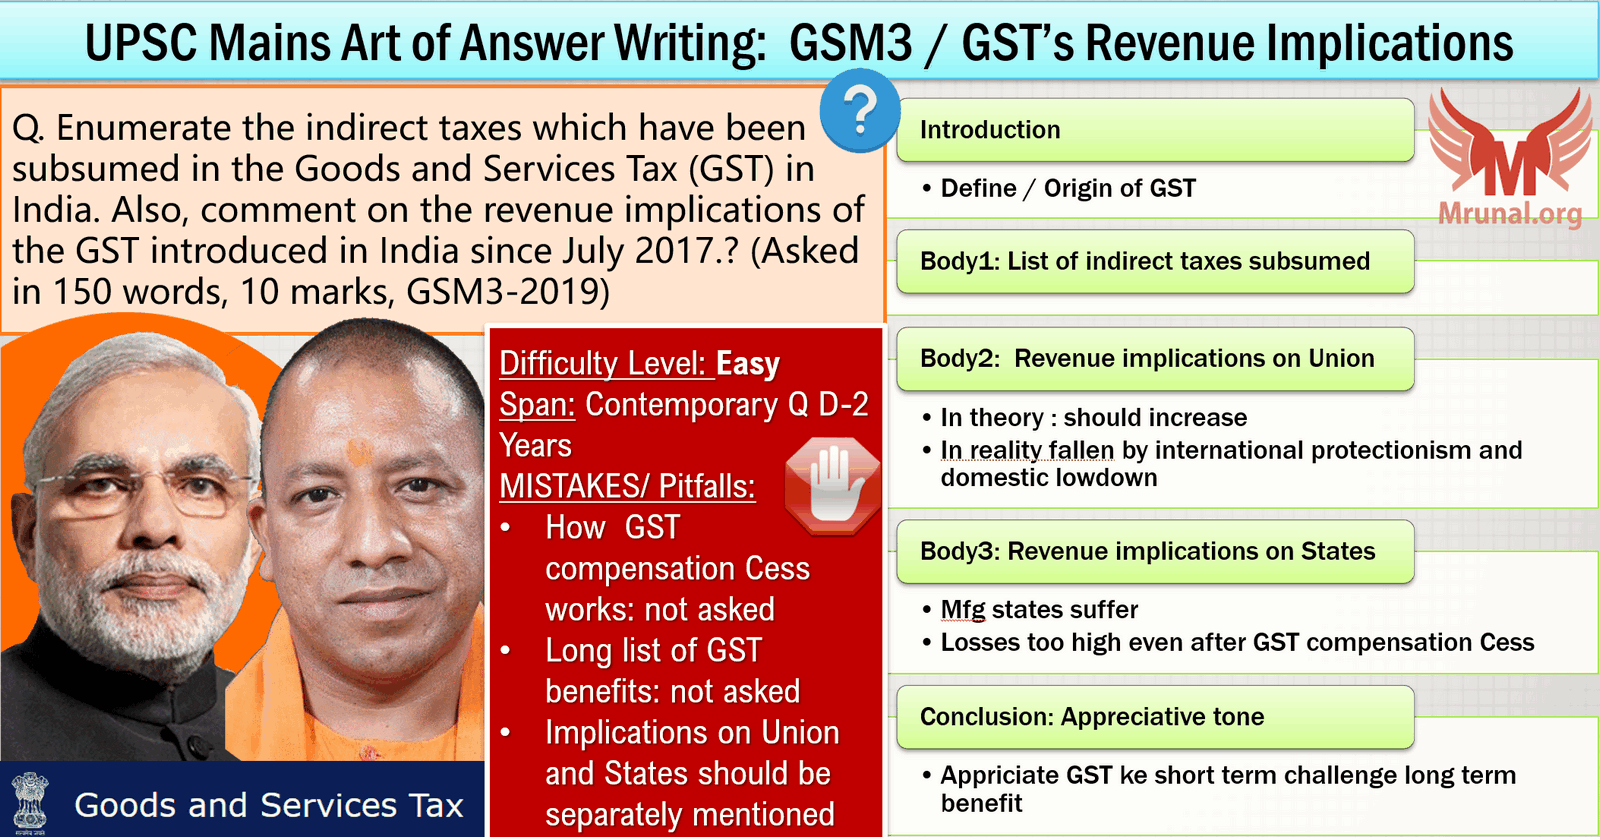 UPSC Mains Model Answer Writing Framework for GST Question